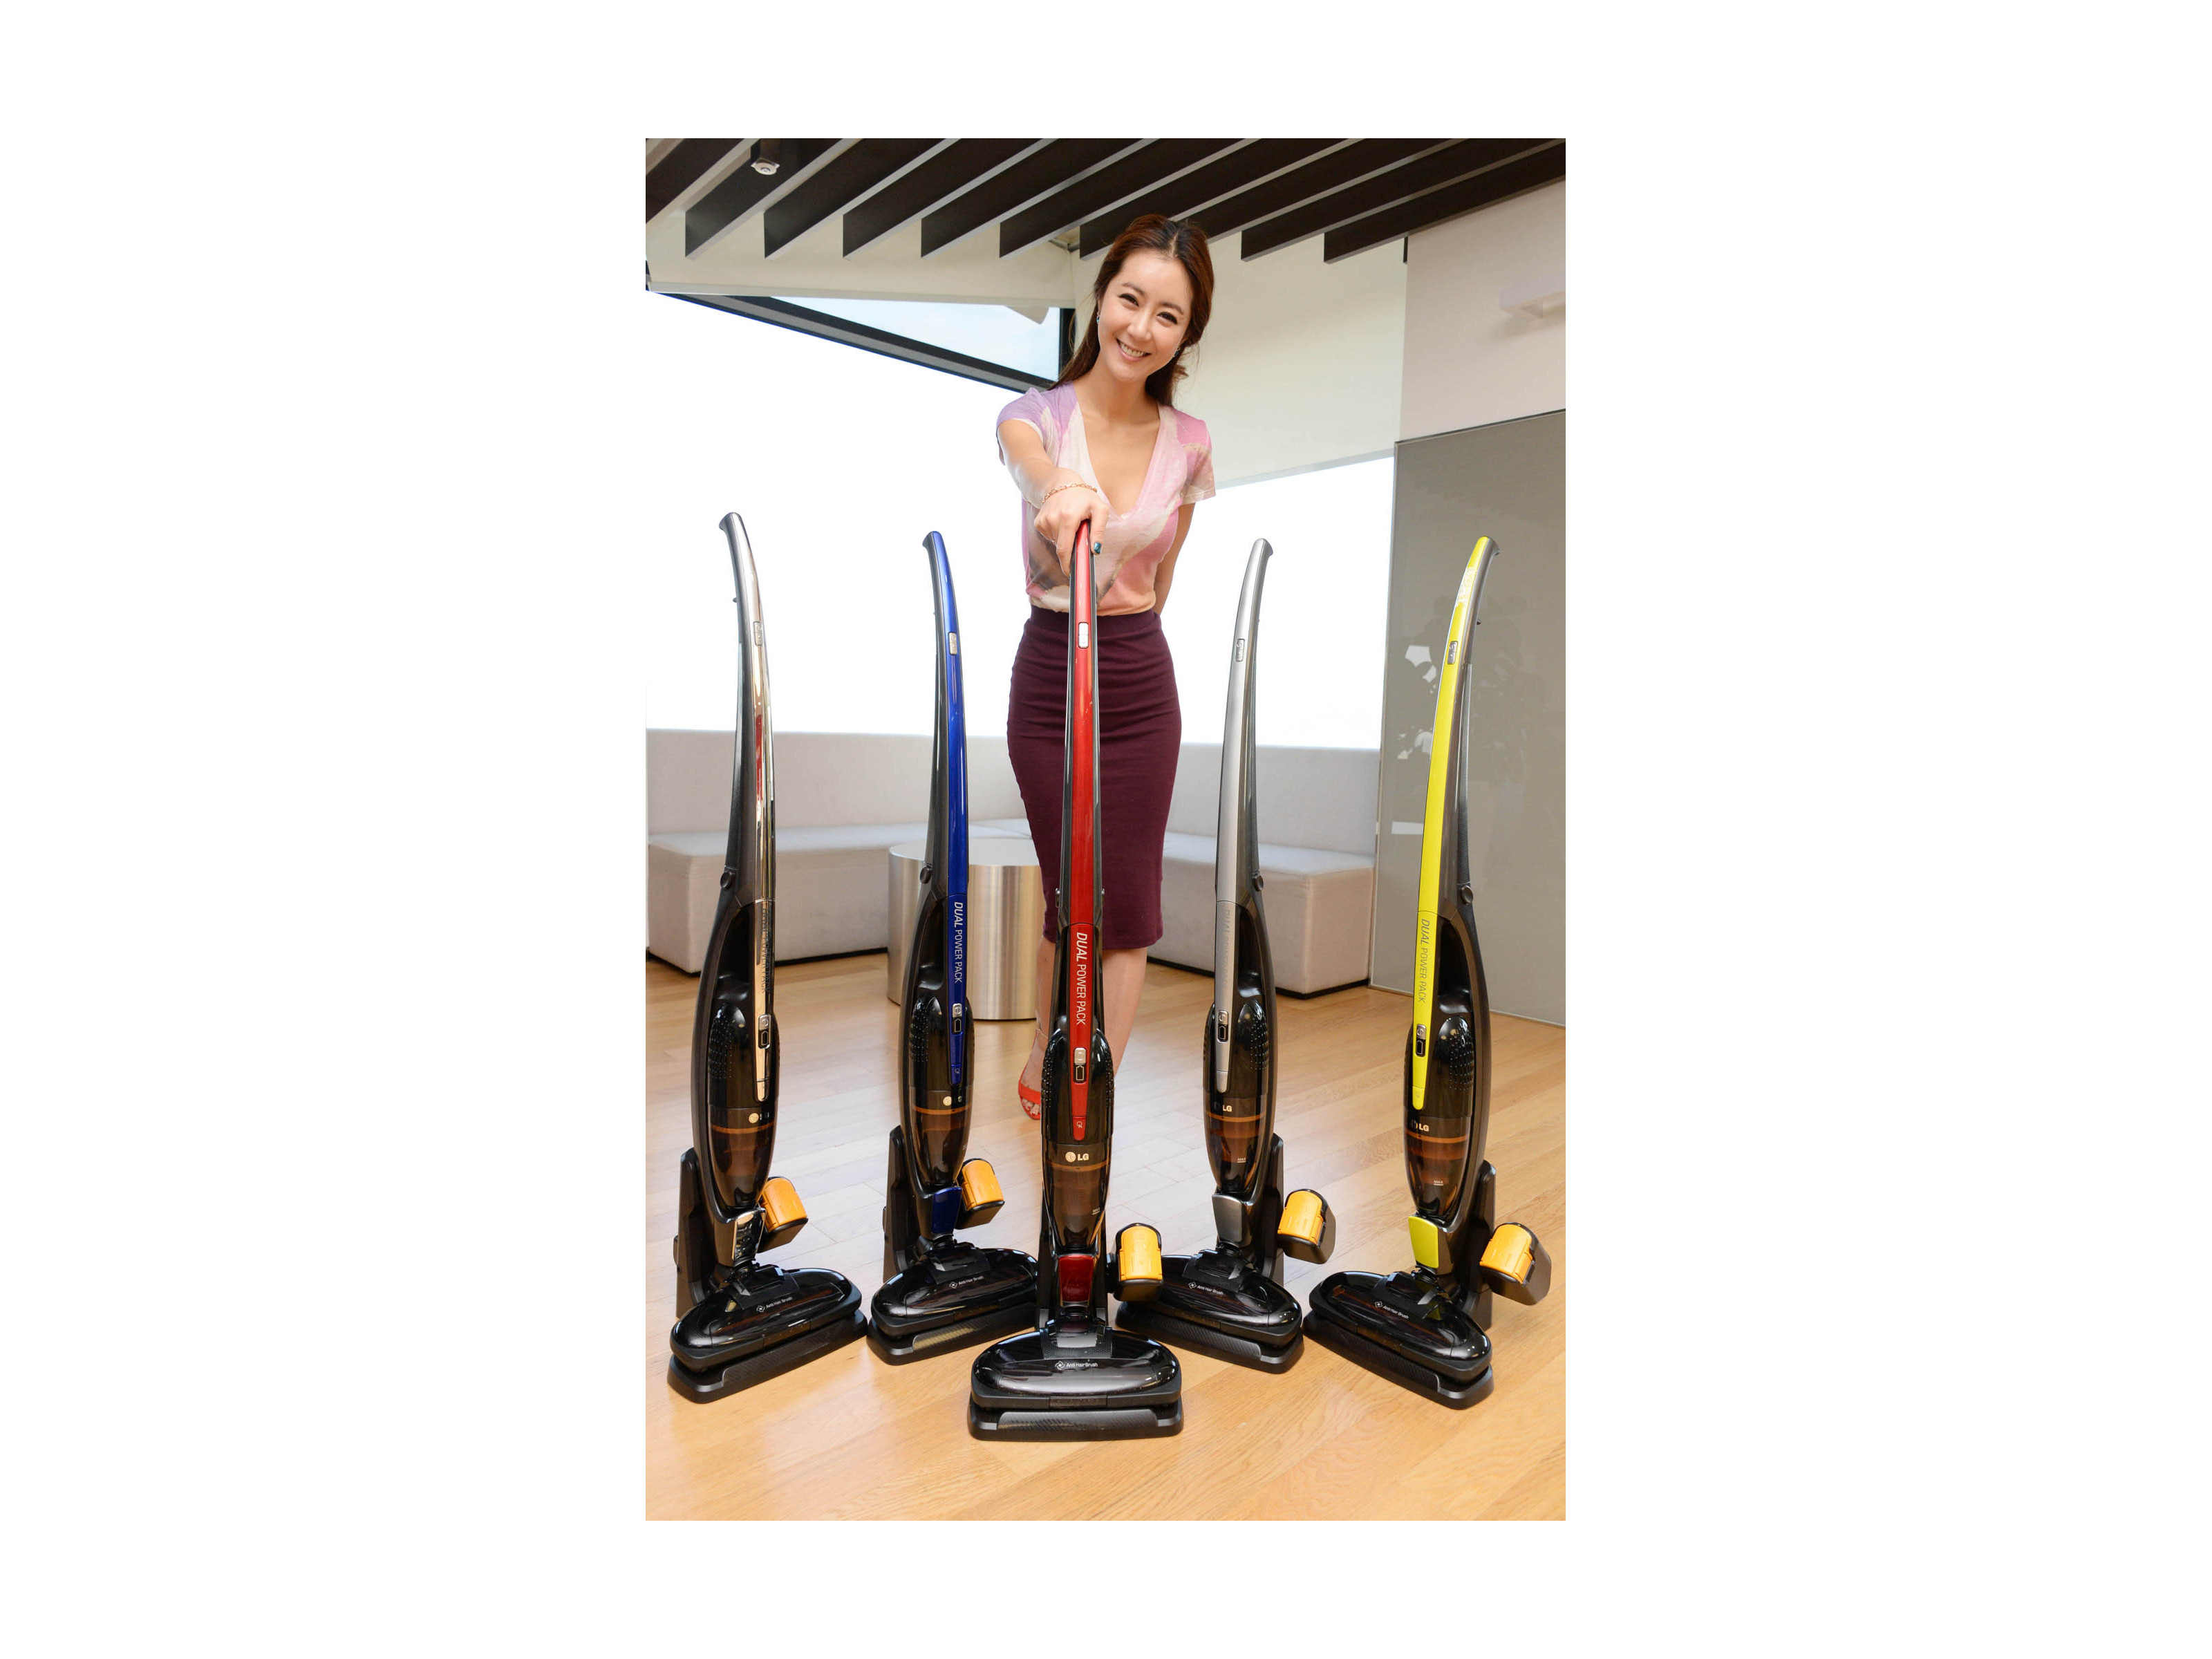 LG Electronics' Cord Zero Handy Stick wireless vacuum cleaner released in September last year.